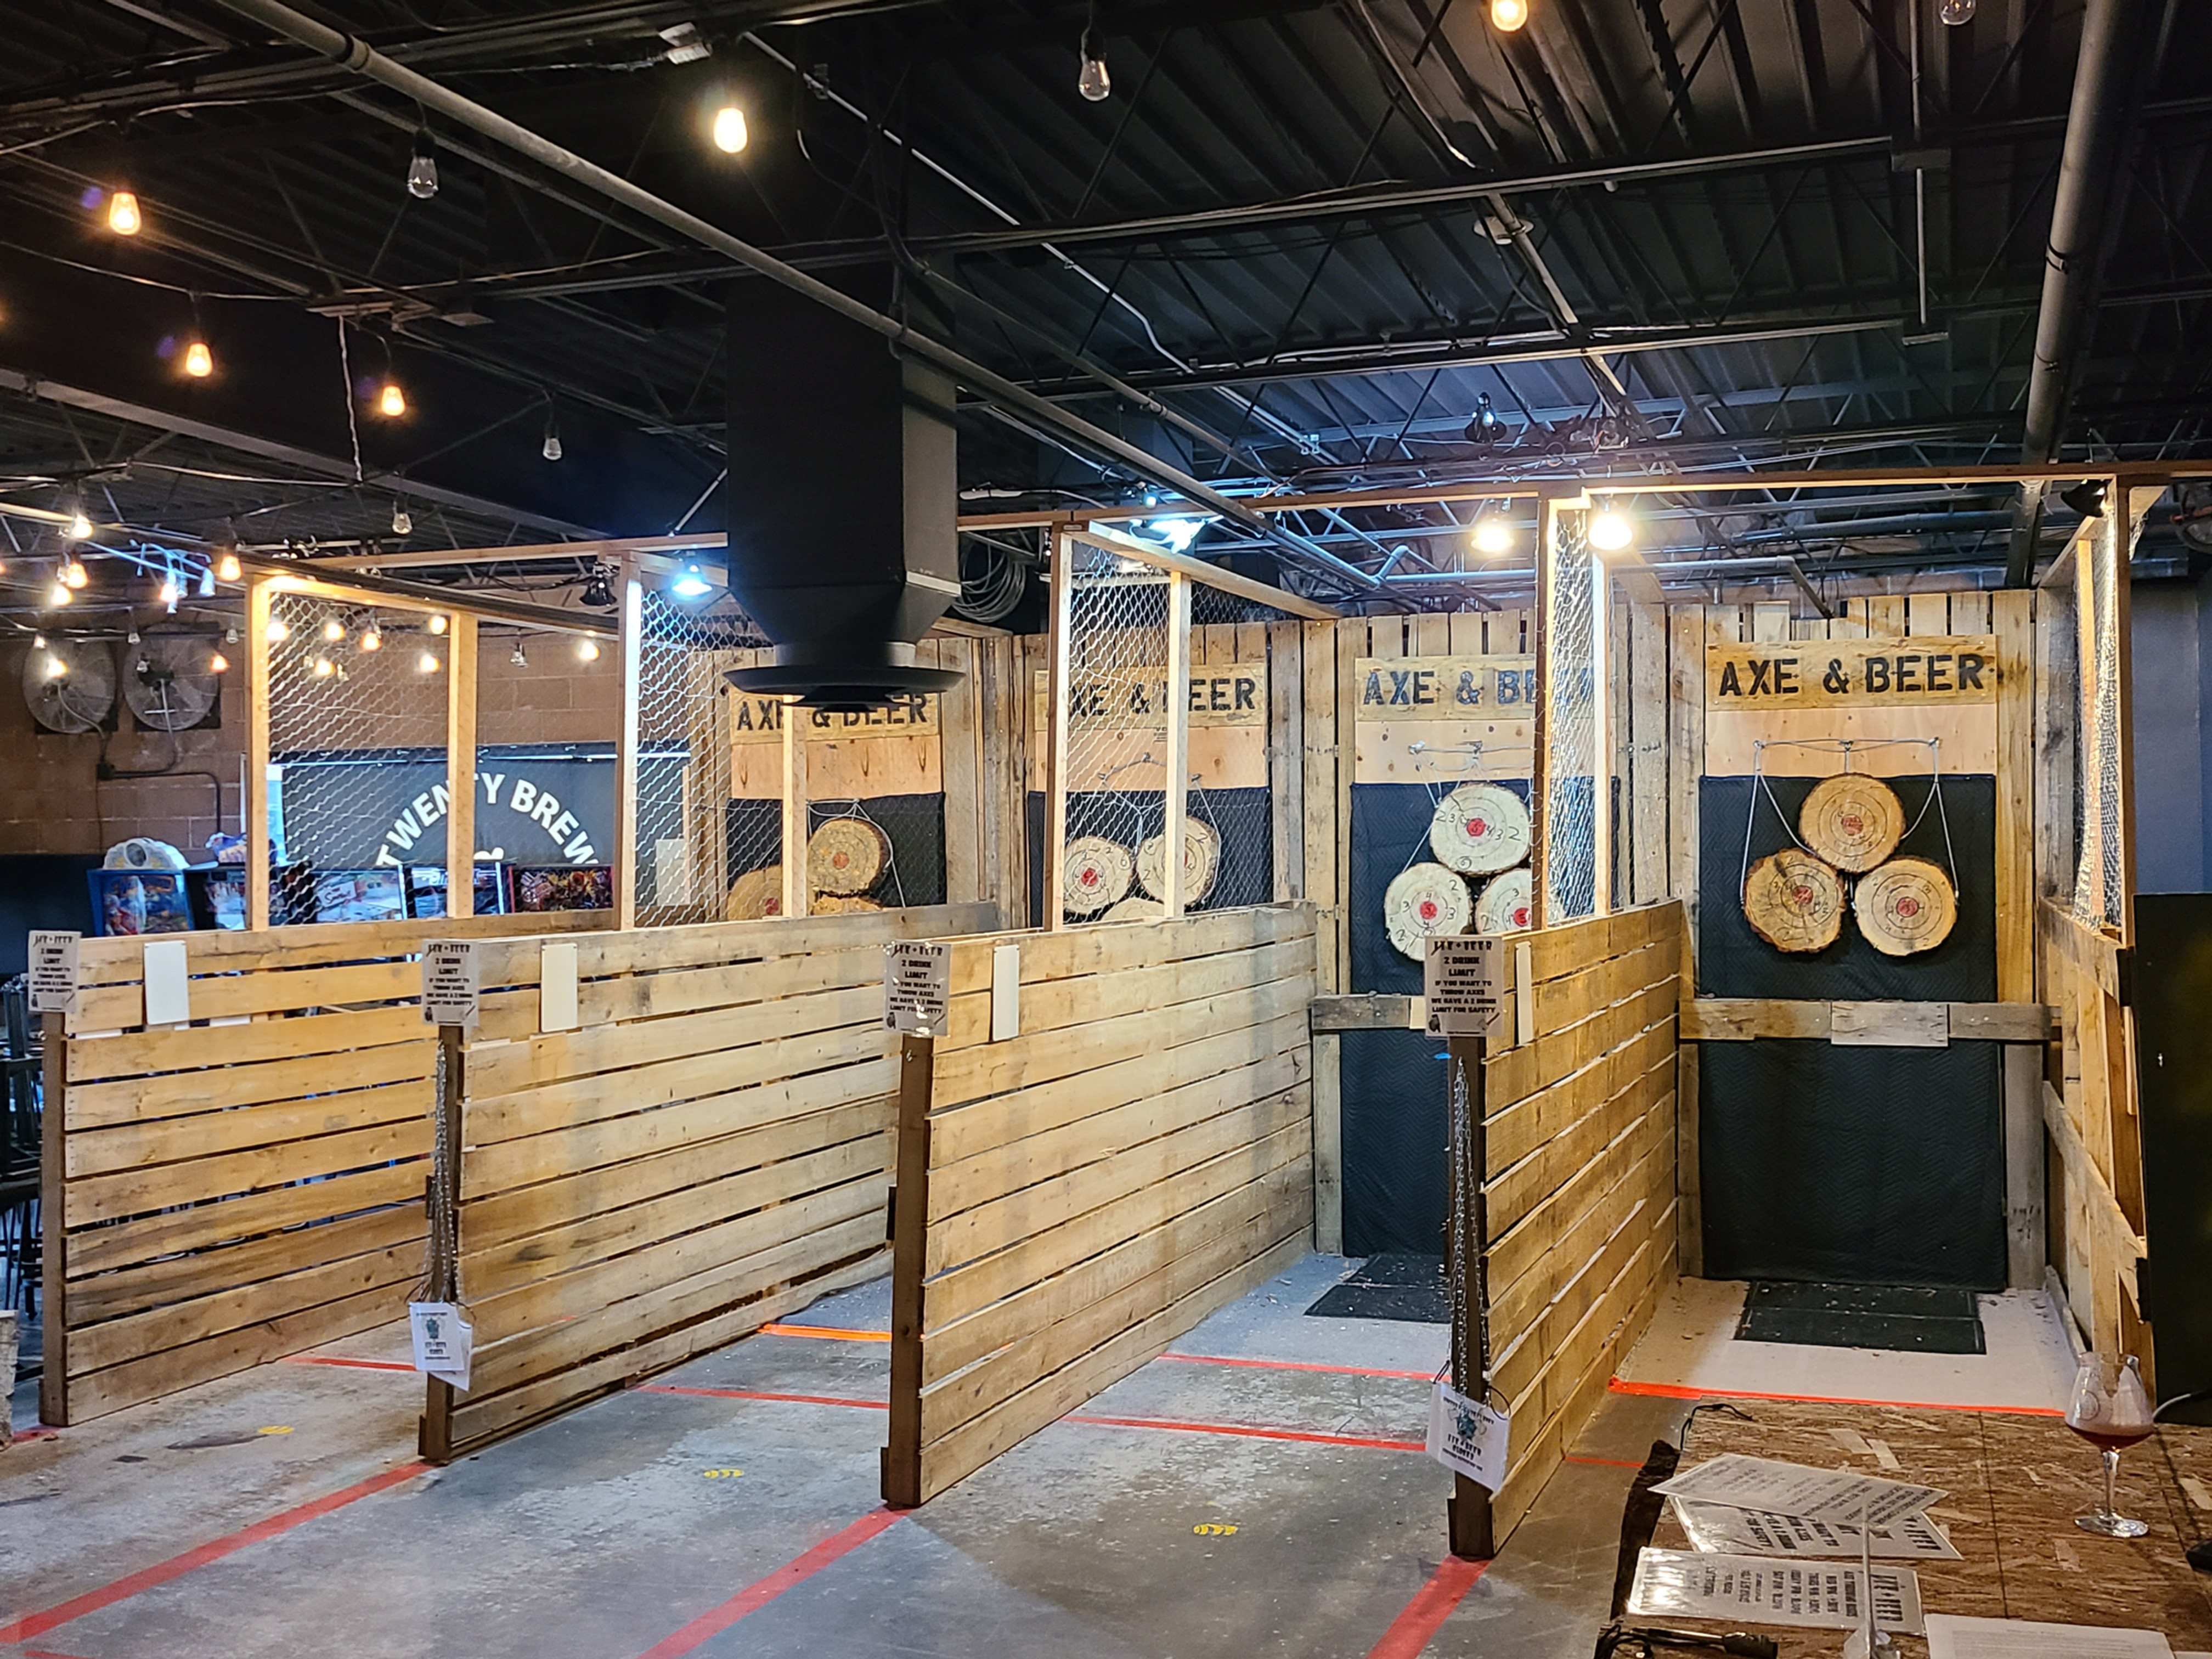 ONLINE RESERVATION FOR AXE THROWING